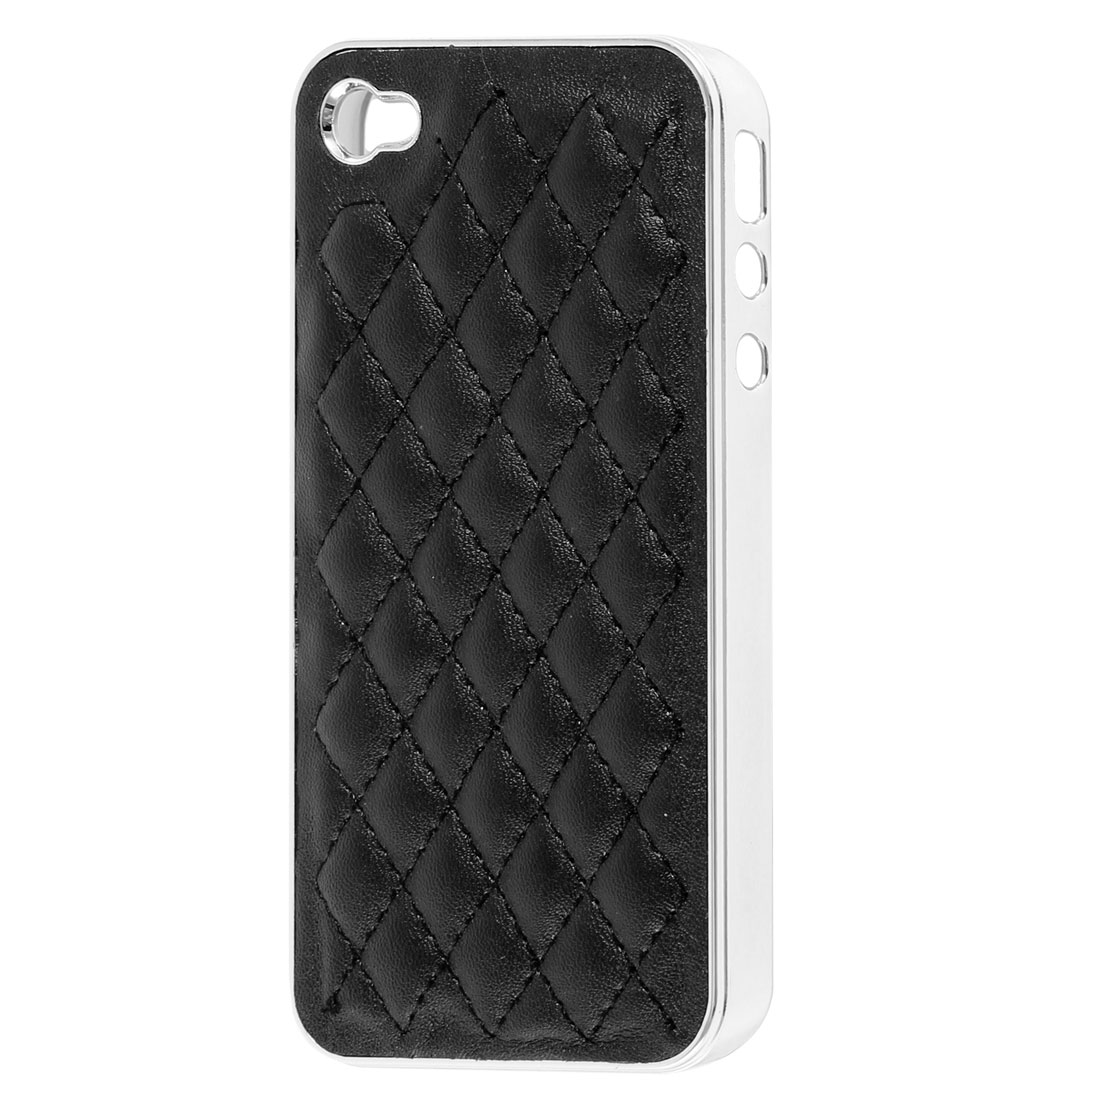 Rhombus Pattern Case Cover Guard Black Silver Tone for iPhone 4 4S 4G 4GS